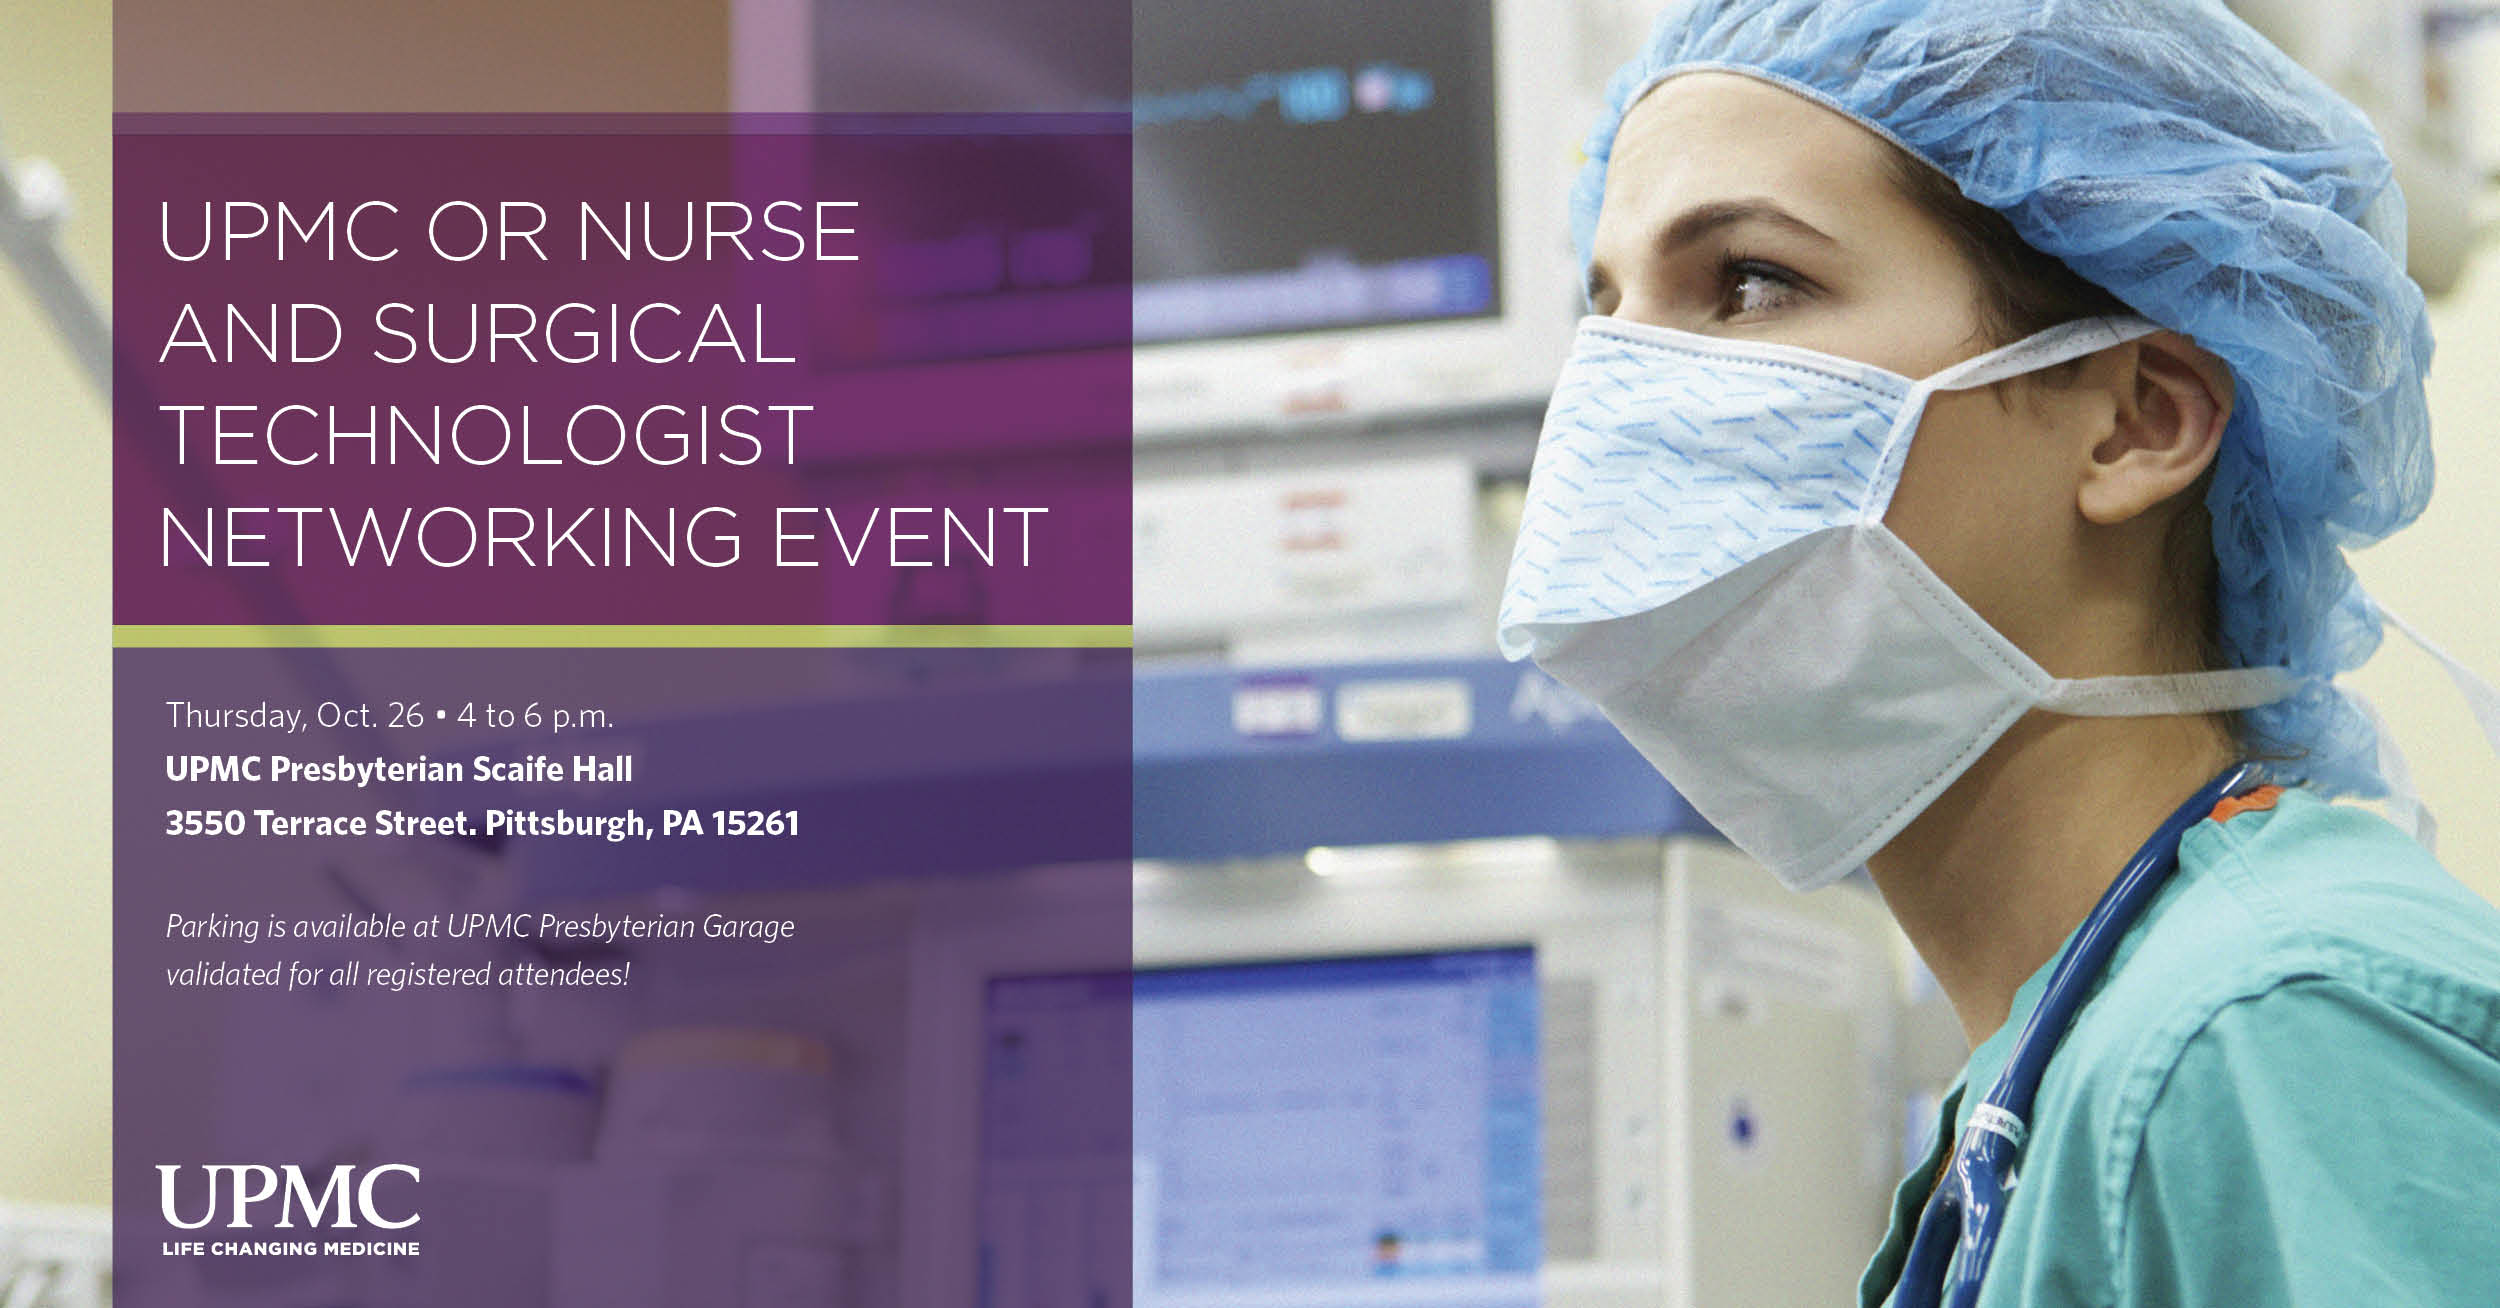 UPMC Nursing and Surgical Technologist Network Event banner